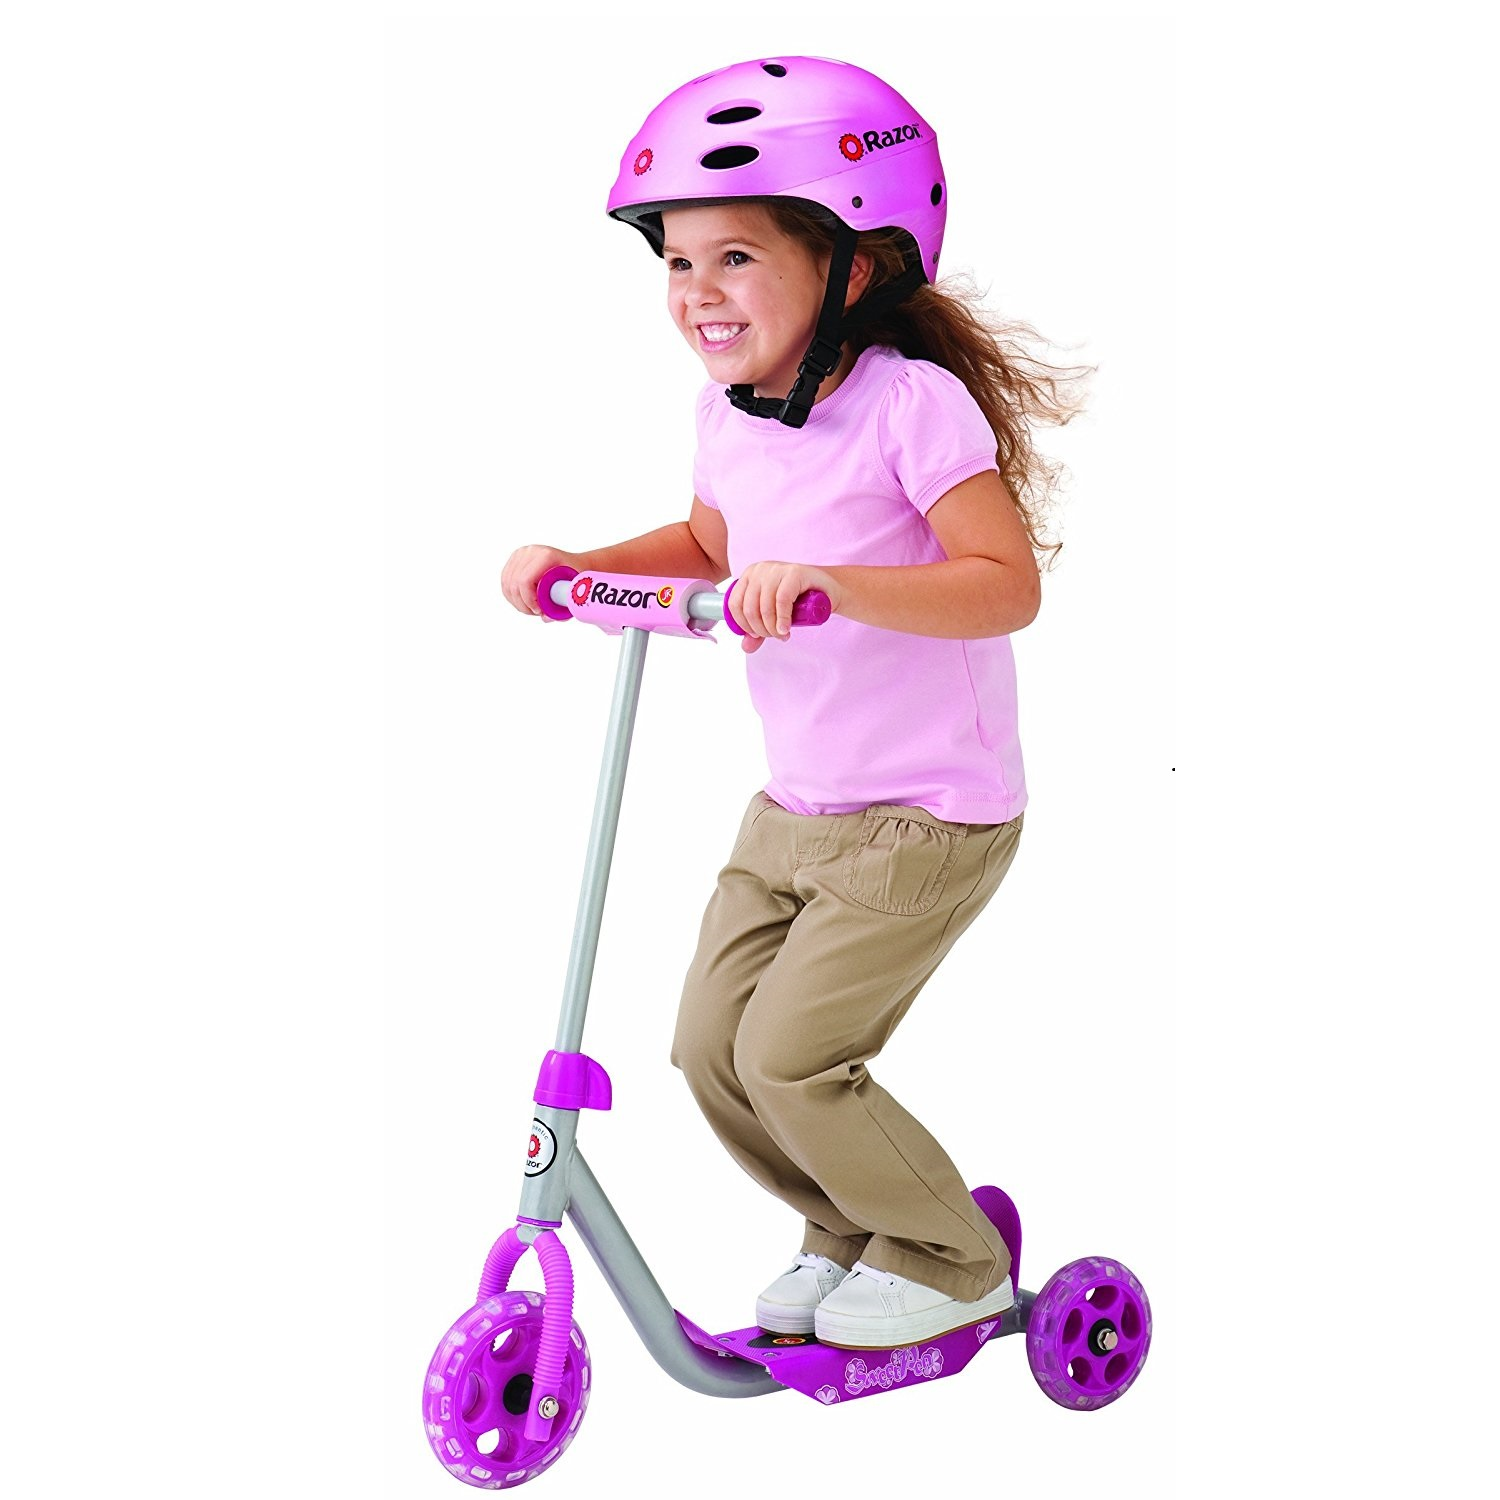 Razor Jr. Lil Kick Toddler Scooter